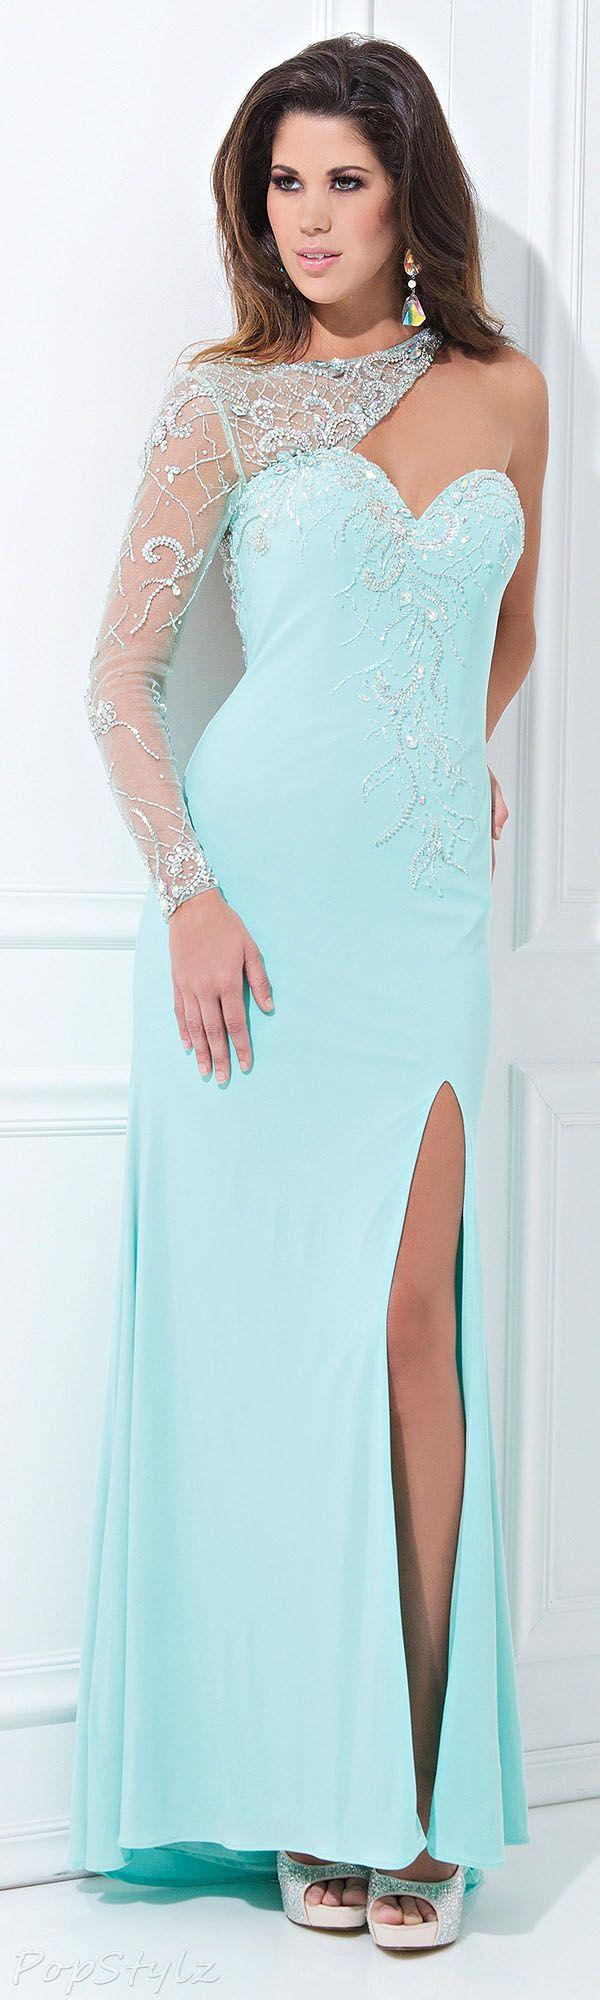 Wedding - Gowns...Amore Acquas